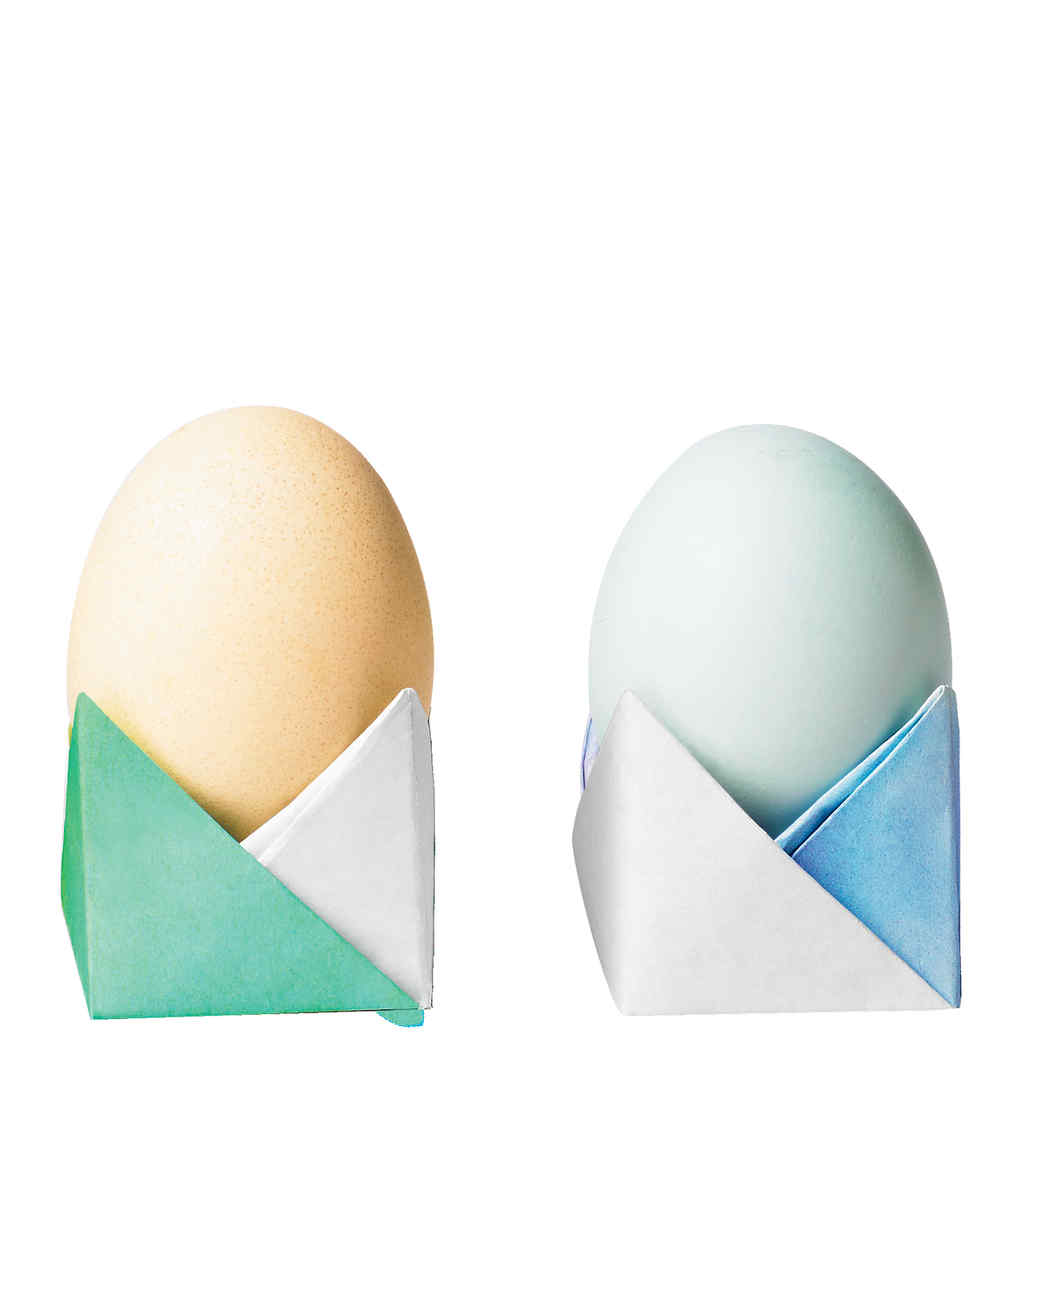 Easter eggs sitting in origami-folded paper cups